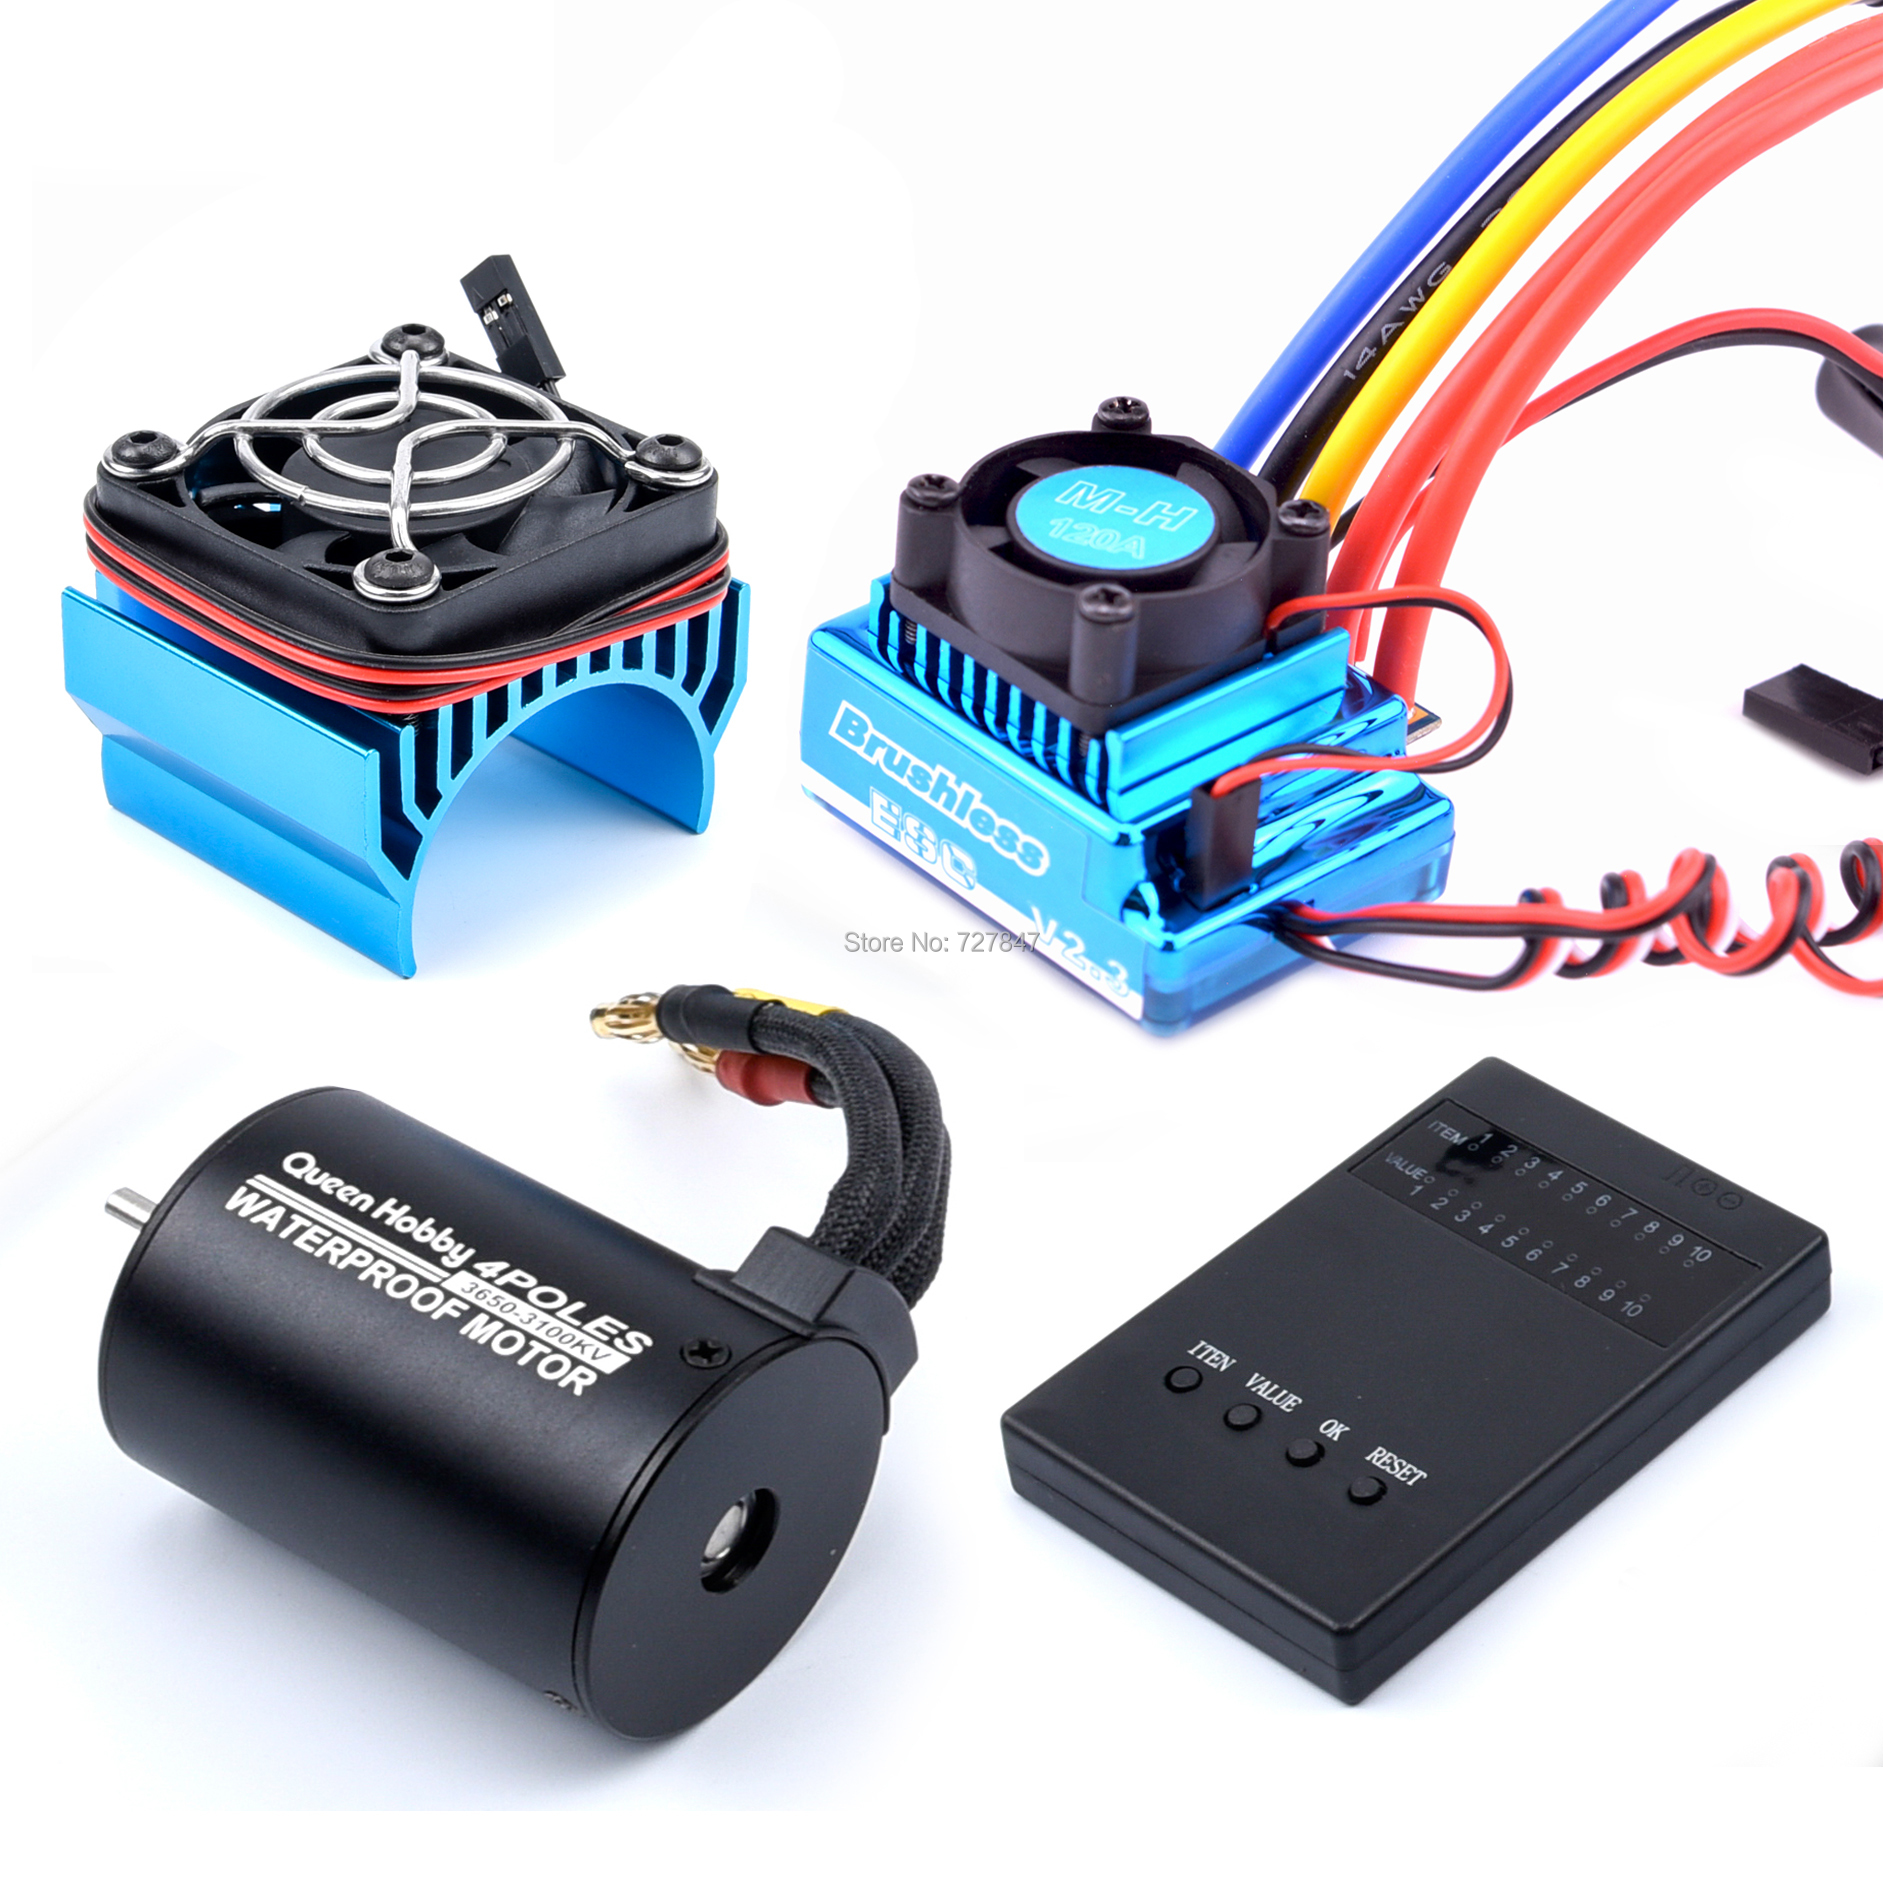 3650 3100KV / 3900KV / 4300KV /5200KV Brushless Motor & 45A 60A 80A 120A ESC With Program Car Combo For 1:10 RC Car RC Boat Part